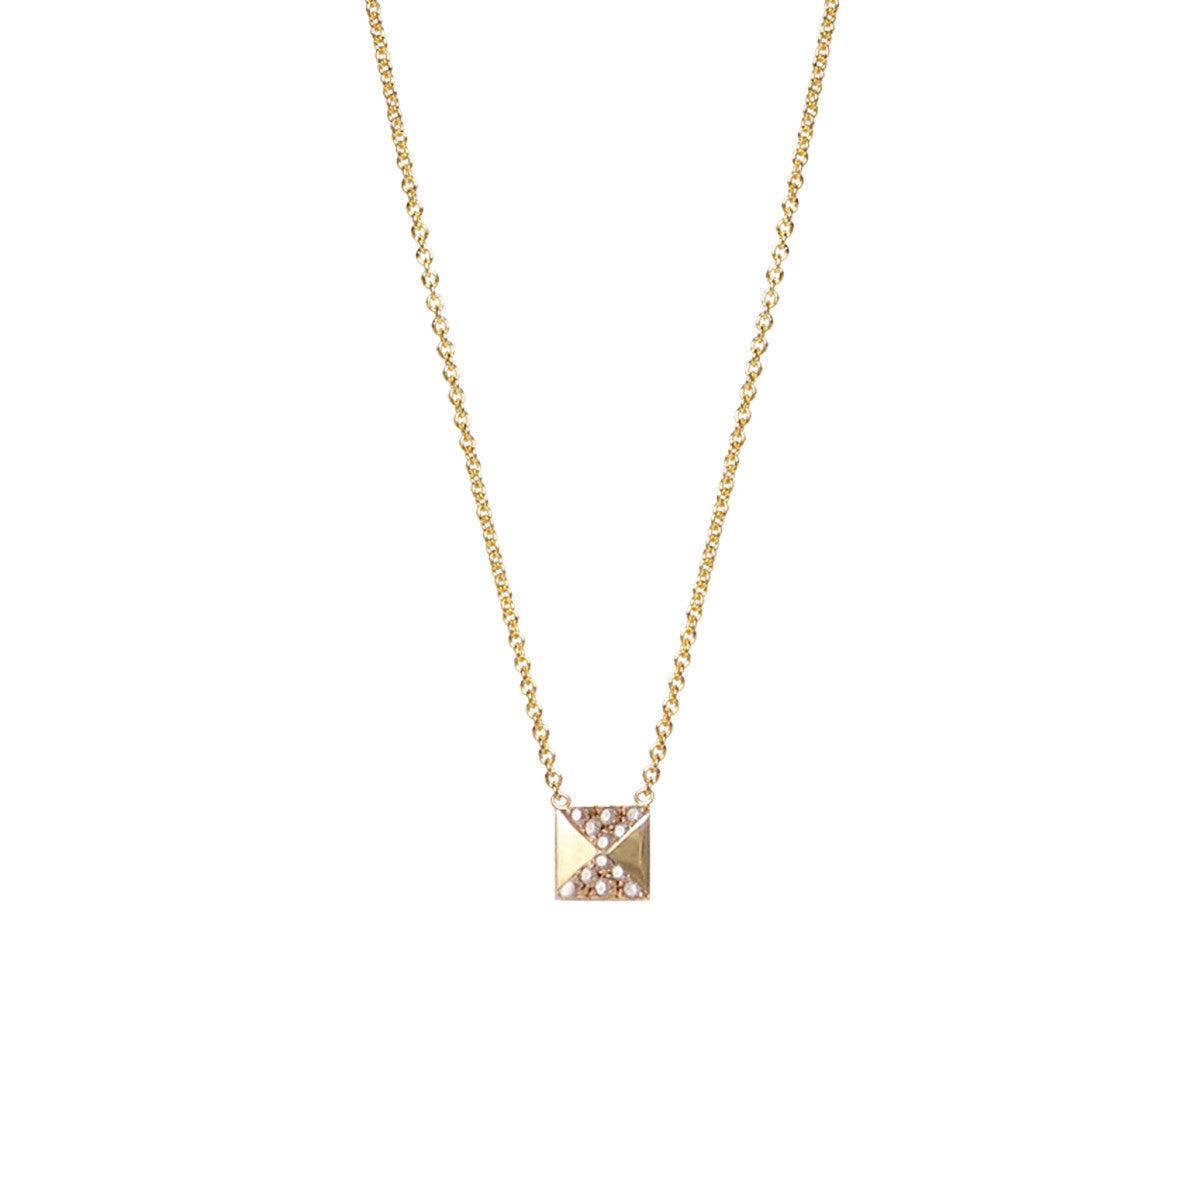 14k pave single spike necklace